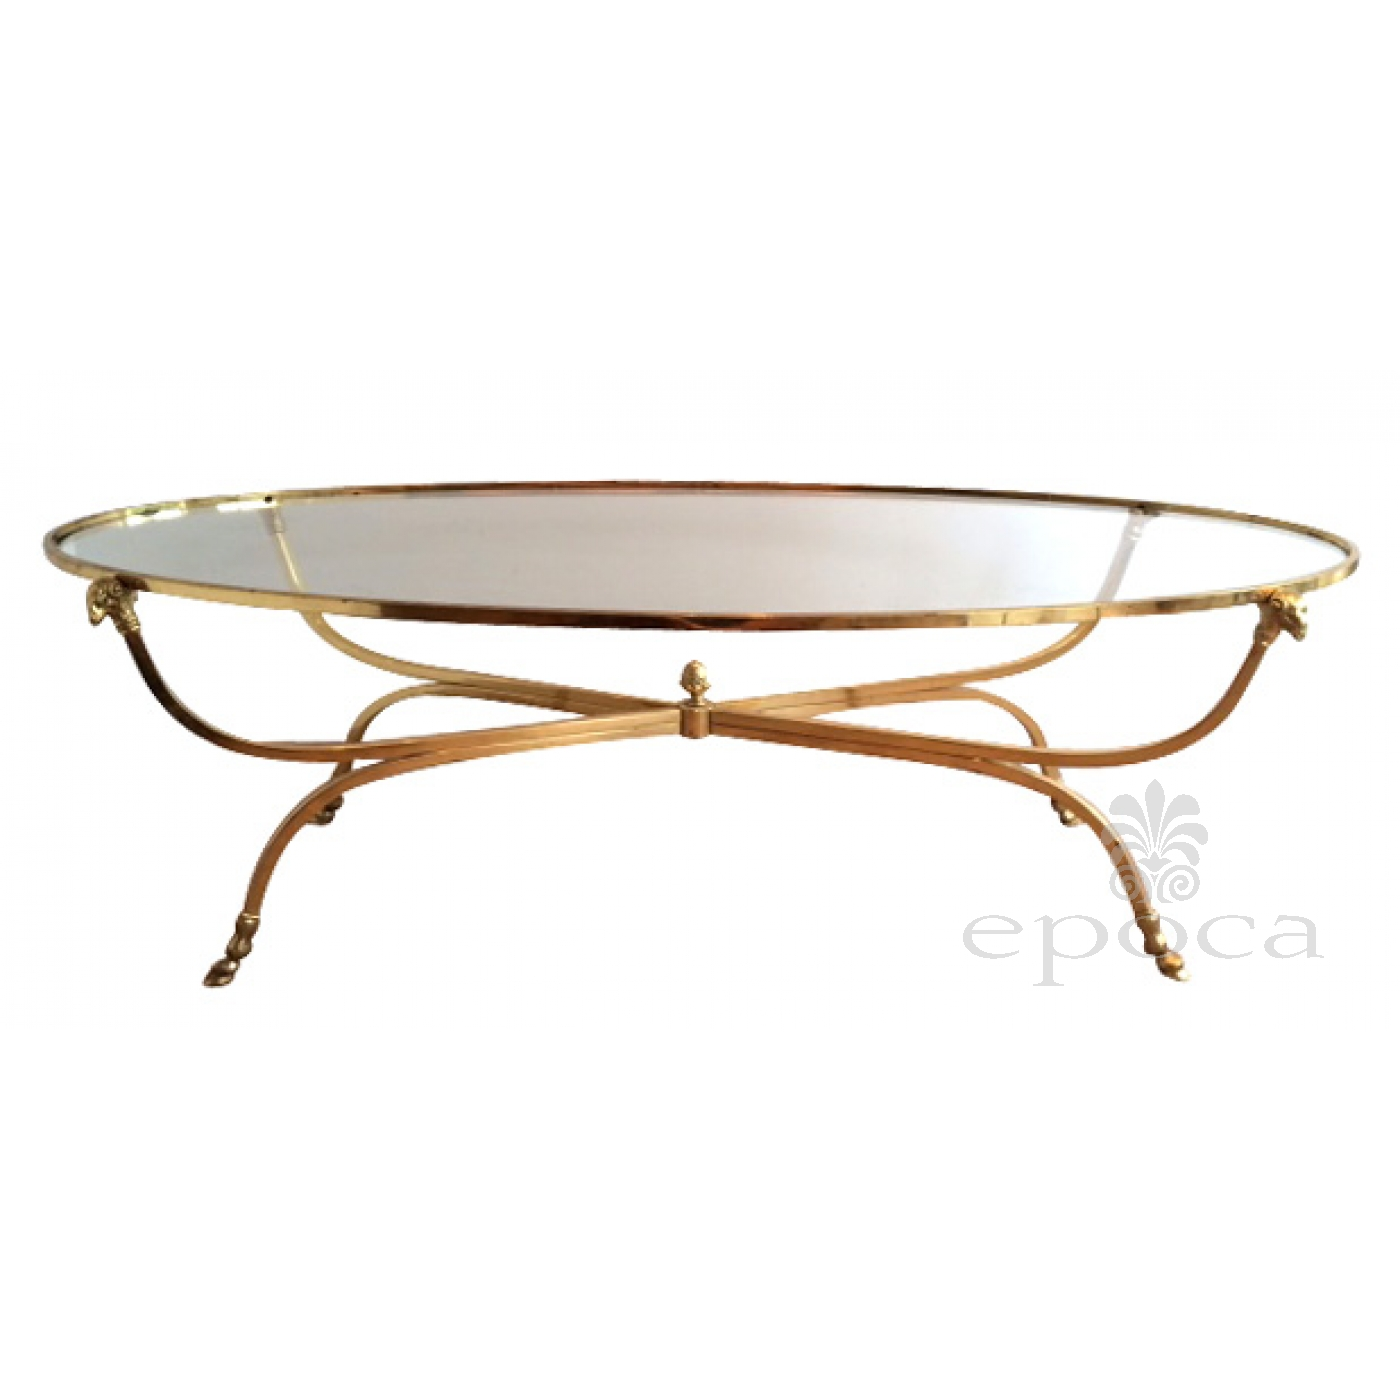 Captivating A Stylish And Good Quality French Mid Century Modern Brass Oval Coffee Table  With Glass